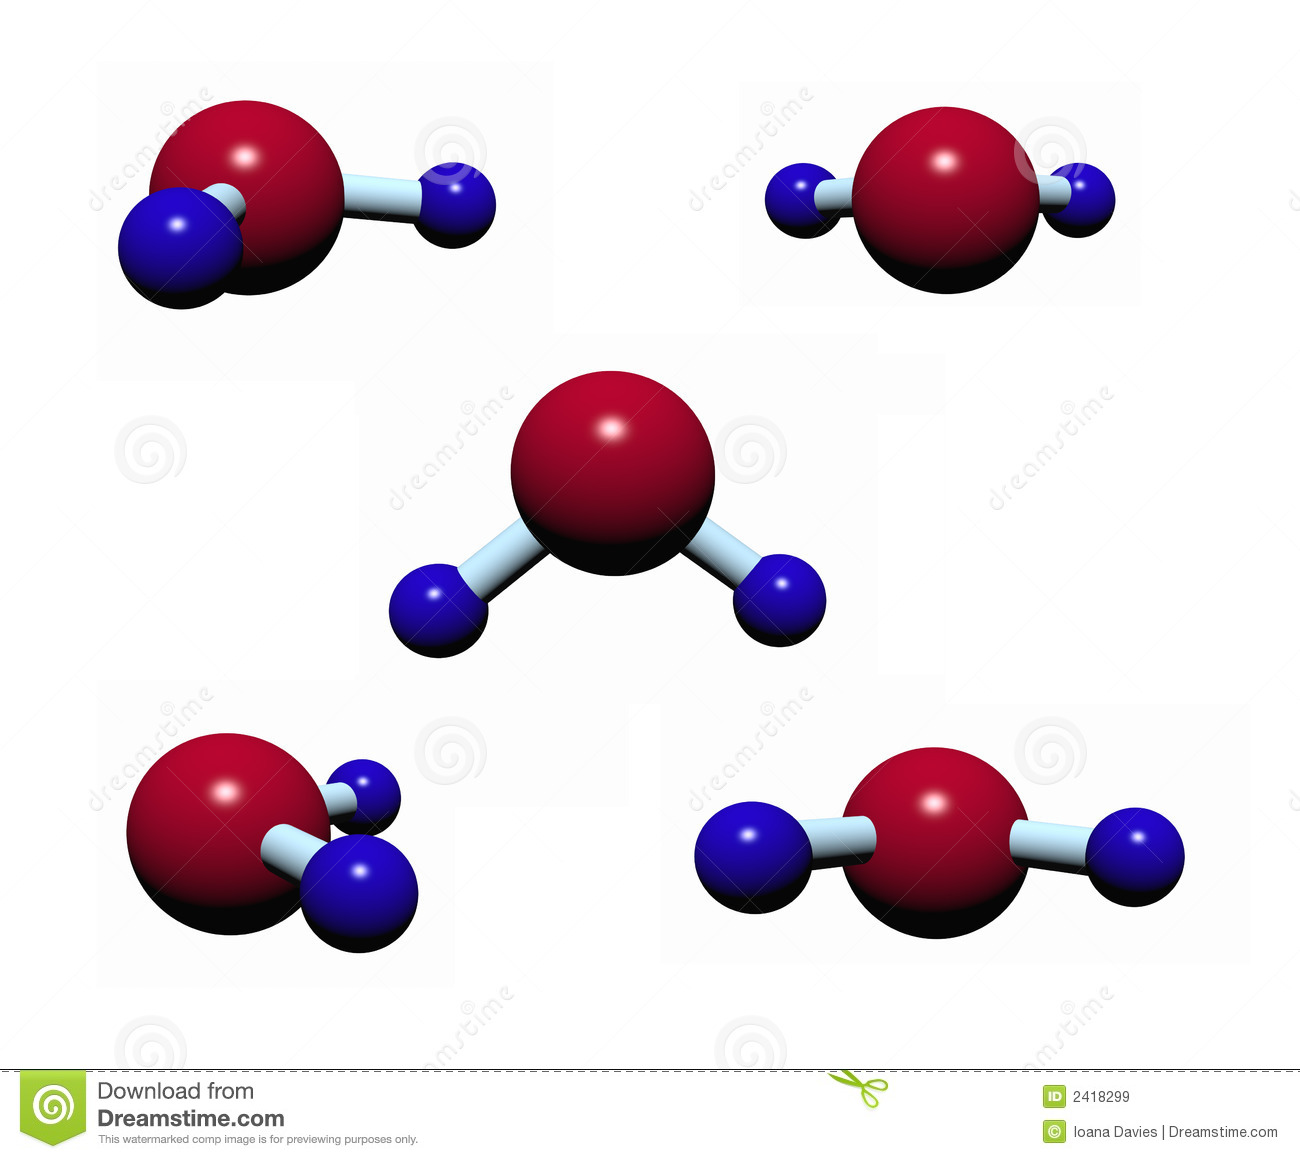 https://thumbs.dreamstime.com/z/h2o-molecular-model-plastic-2418299.jpg